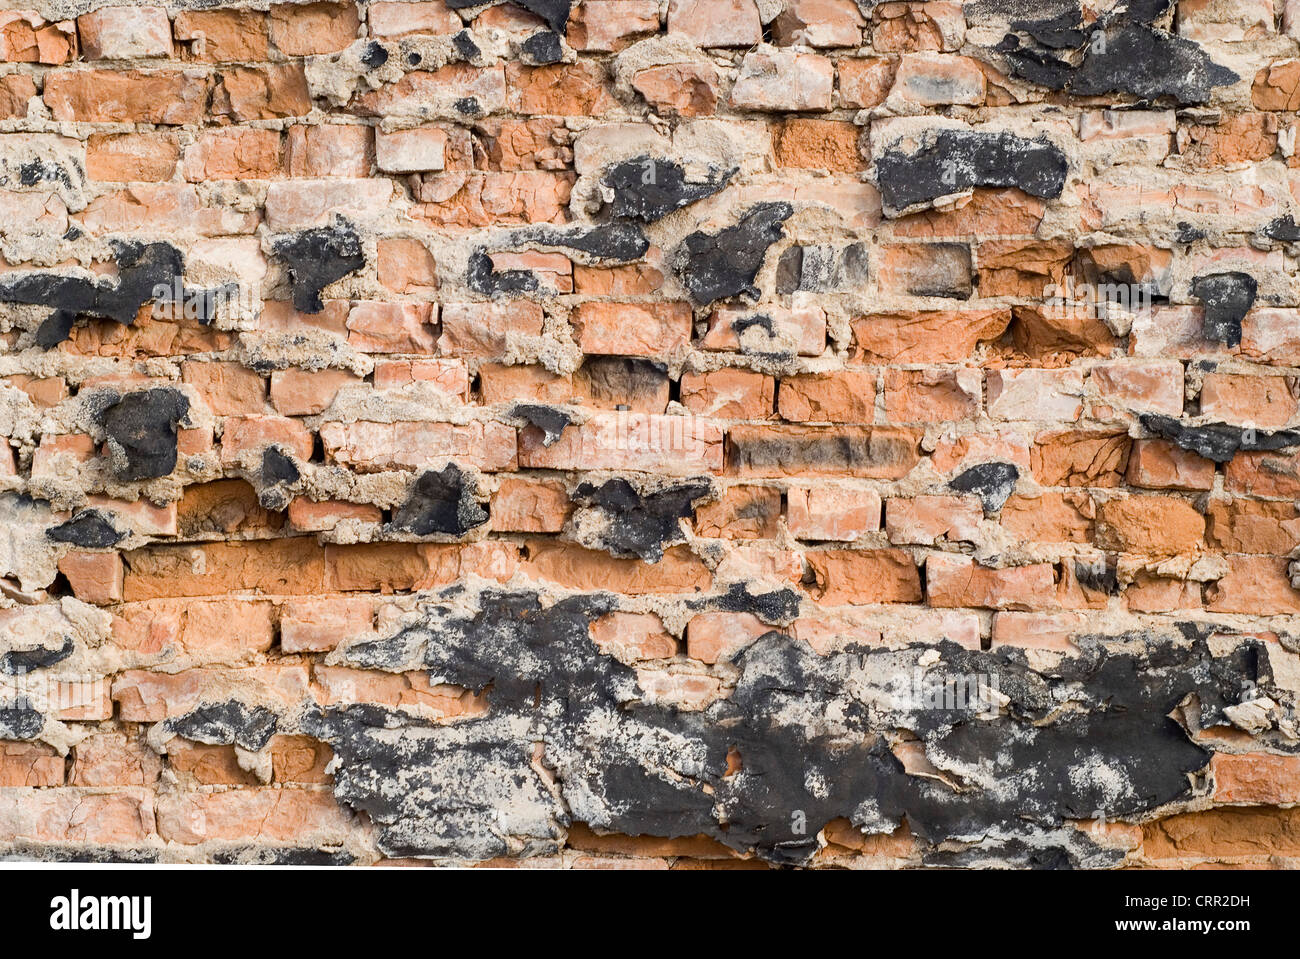 close up view of old broken wall - Stock Image